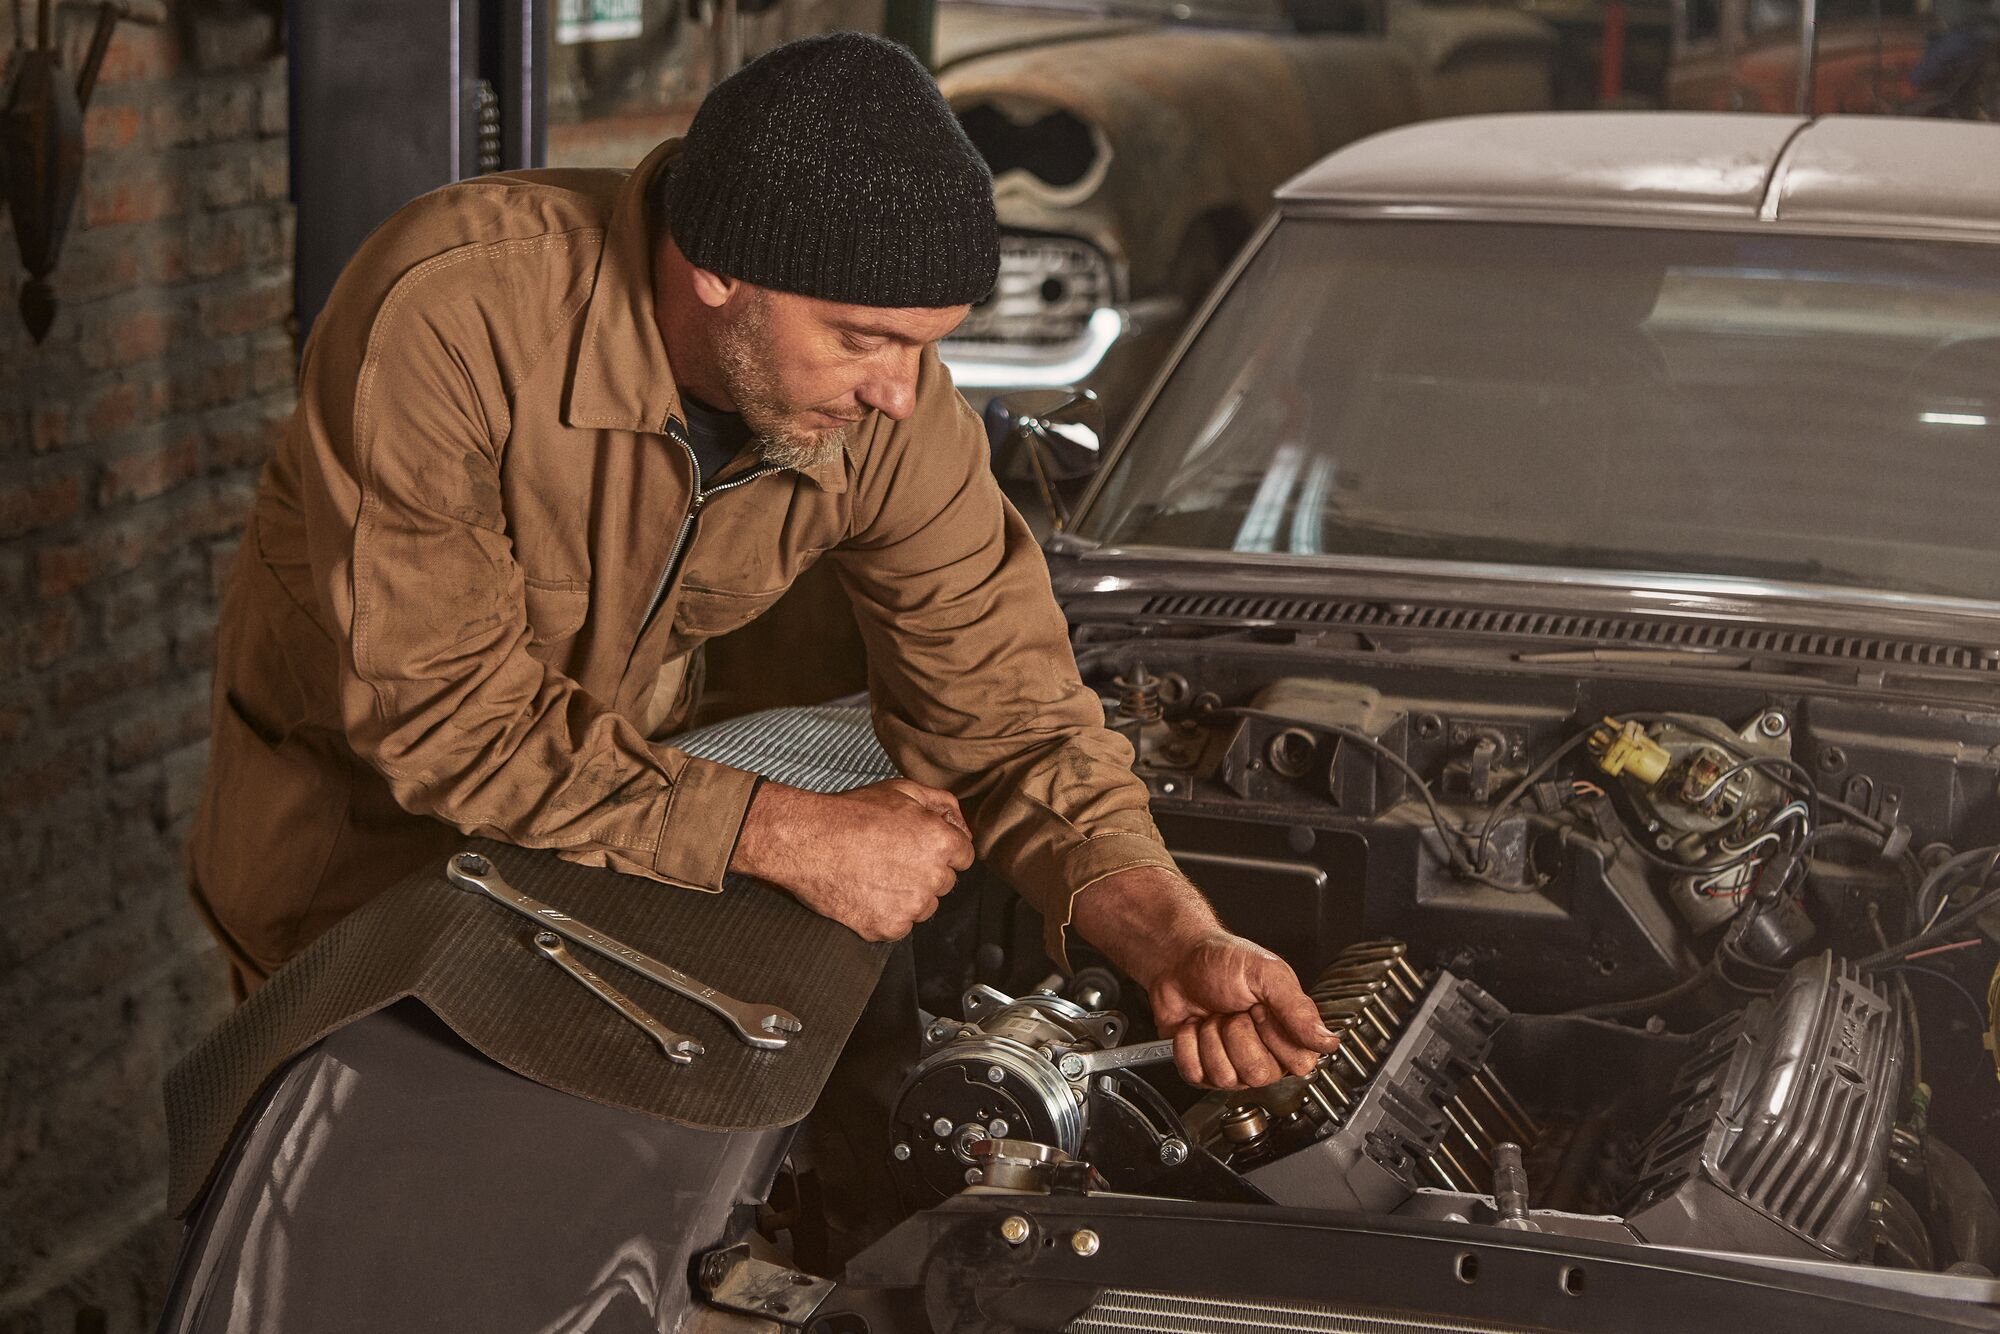 A mechanic using a STANLEY Antislip Wrench on a car's engine